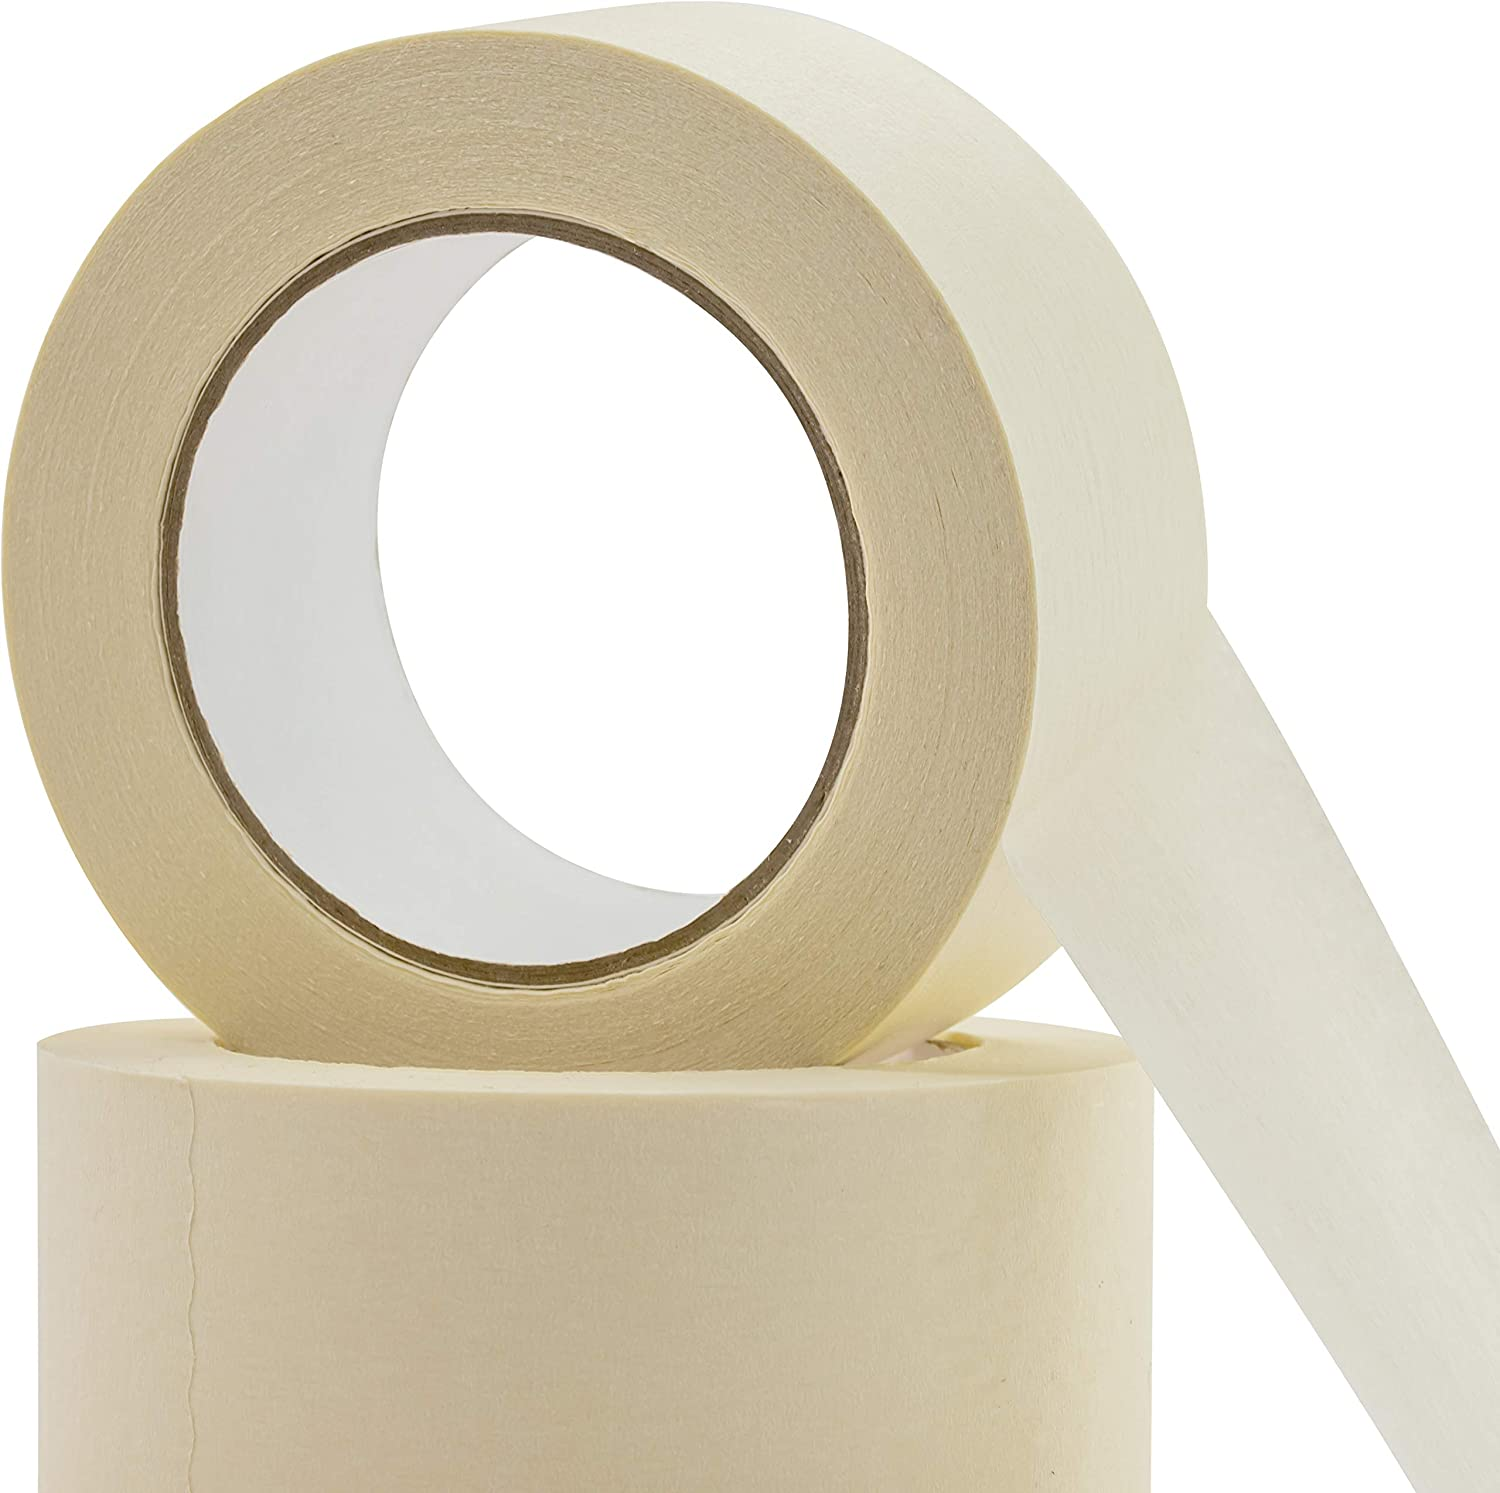 Easy-Tear Pro-Grade Removable Painters Tape Great for Home Clean No-Residue 1 Inch 60 Yard Masking Tape 6 Pk Drip-Free Painting with Wide Crepe Paper Rolls Office or Commercial Contractor